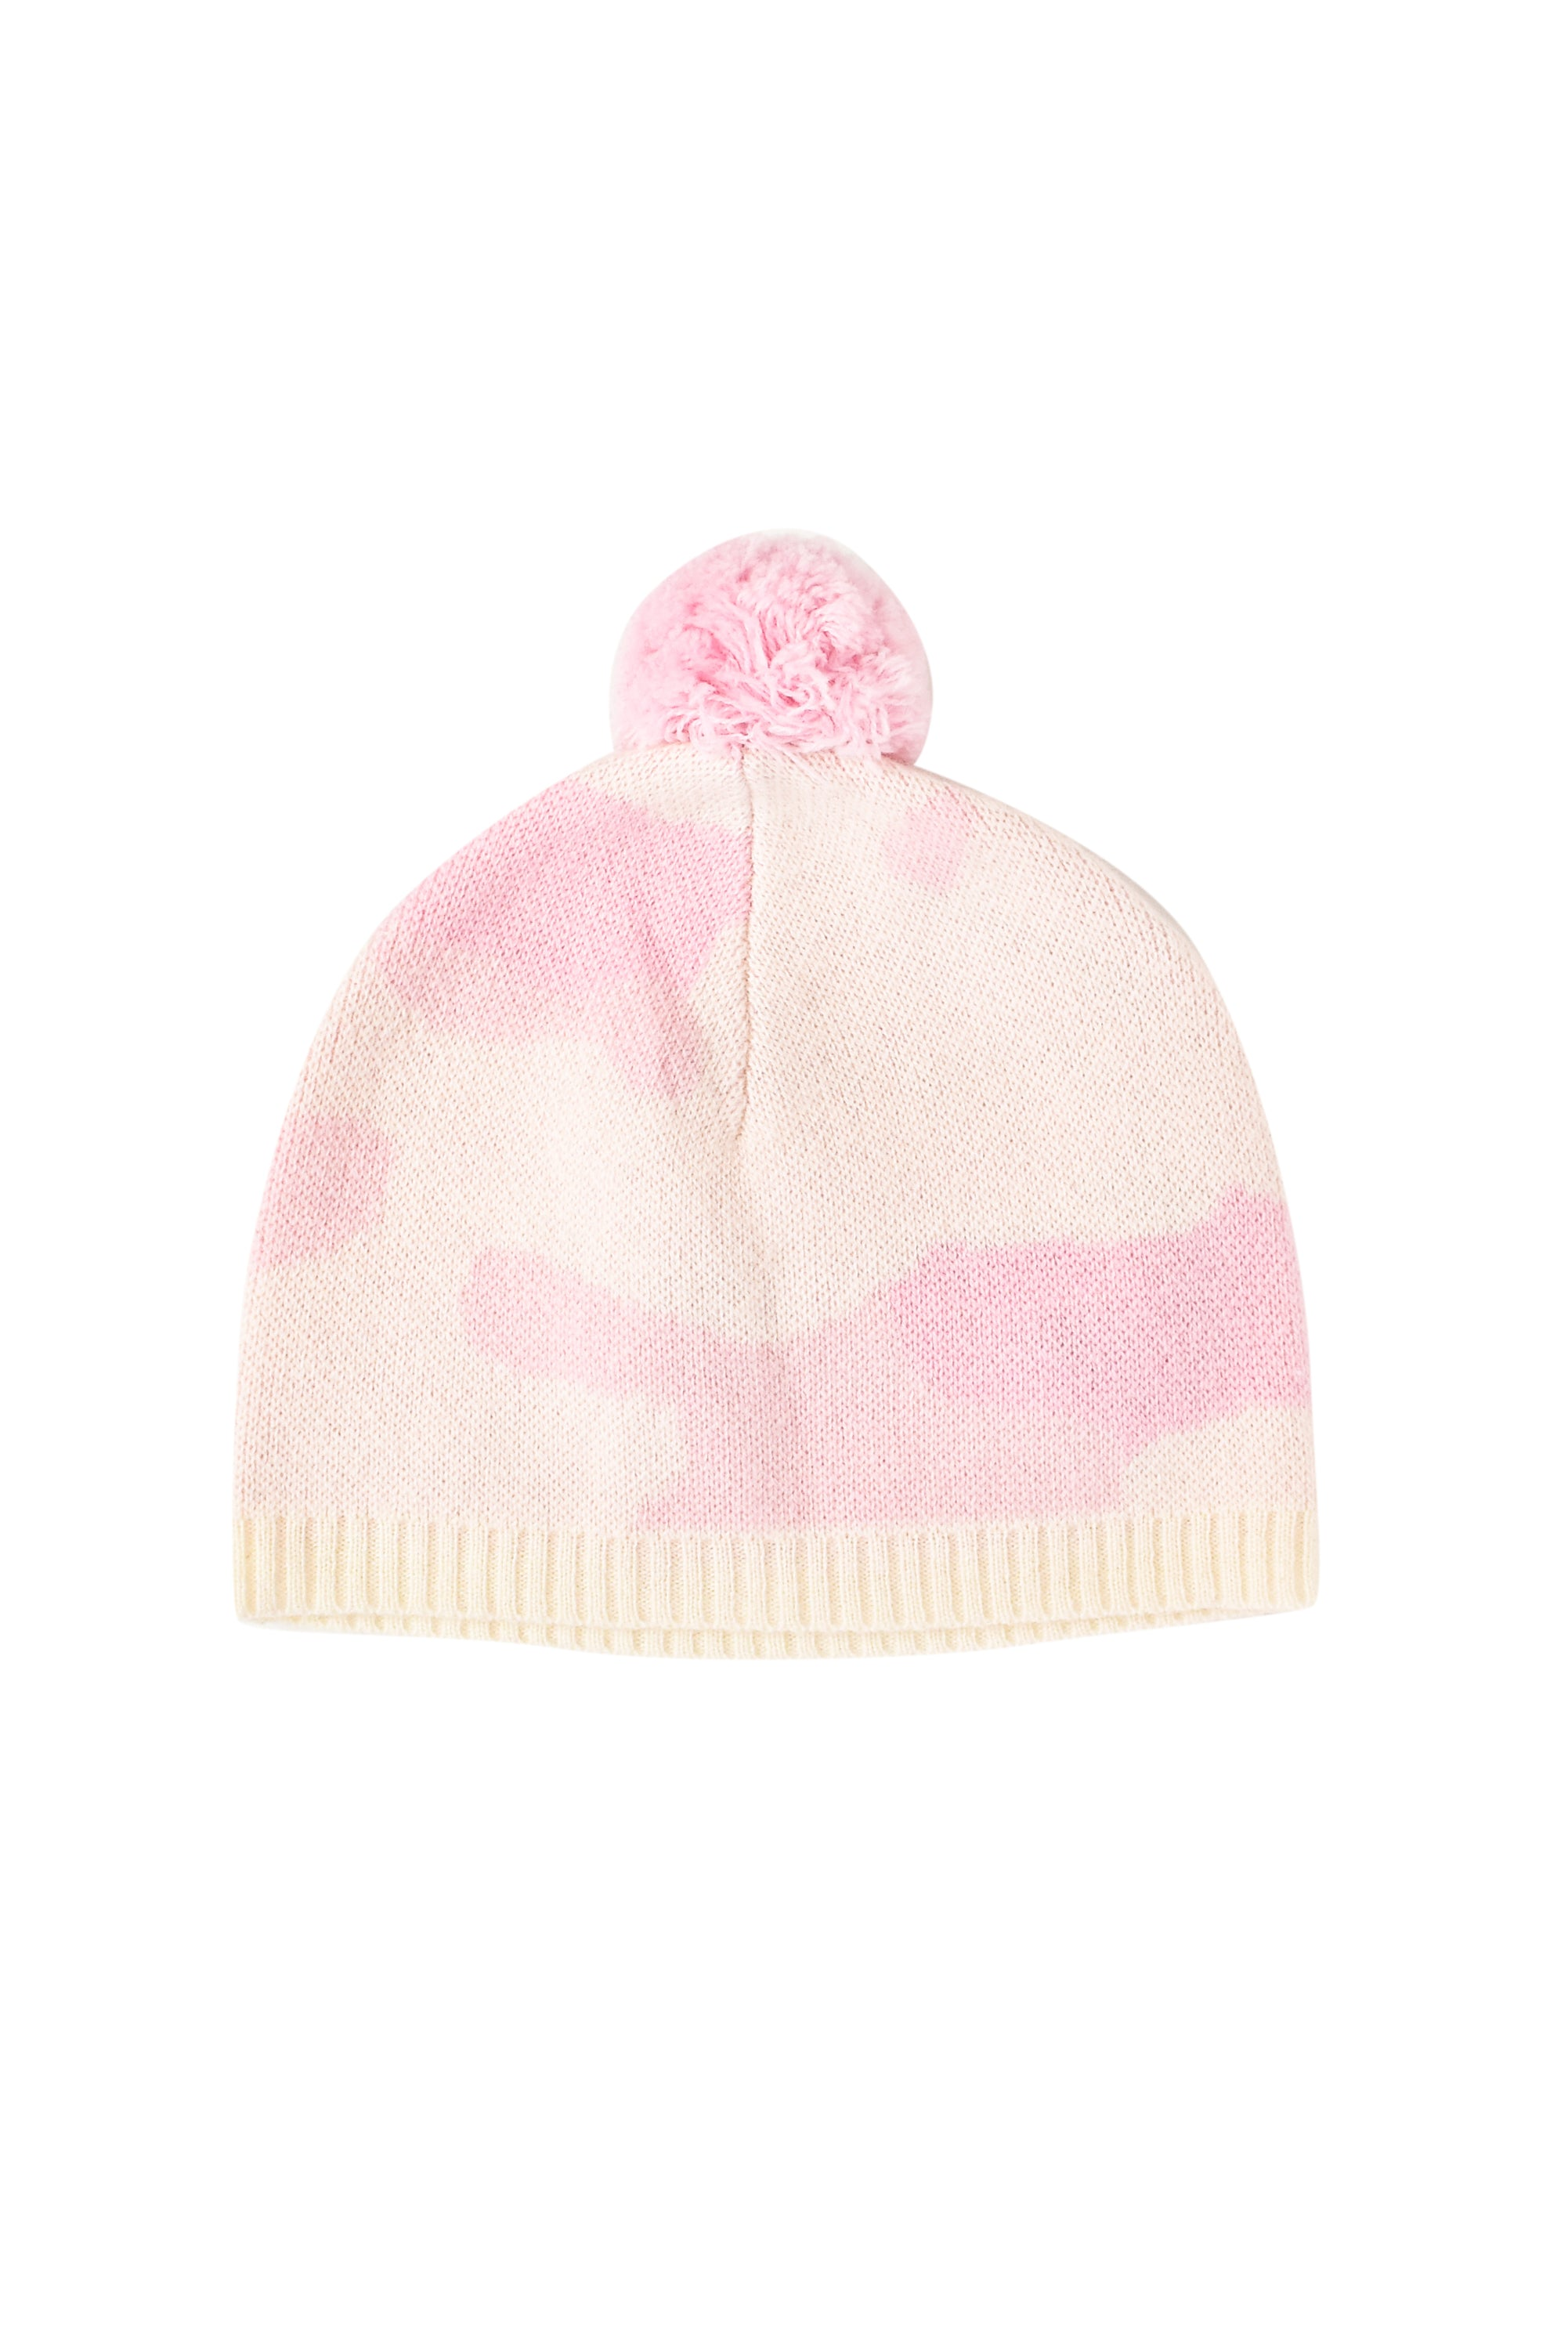 10007666 Atelier Child Kids ~ Beanie 1-3T at Retykle